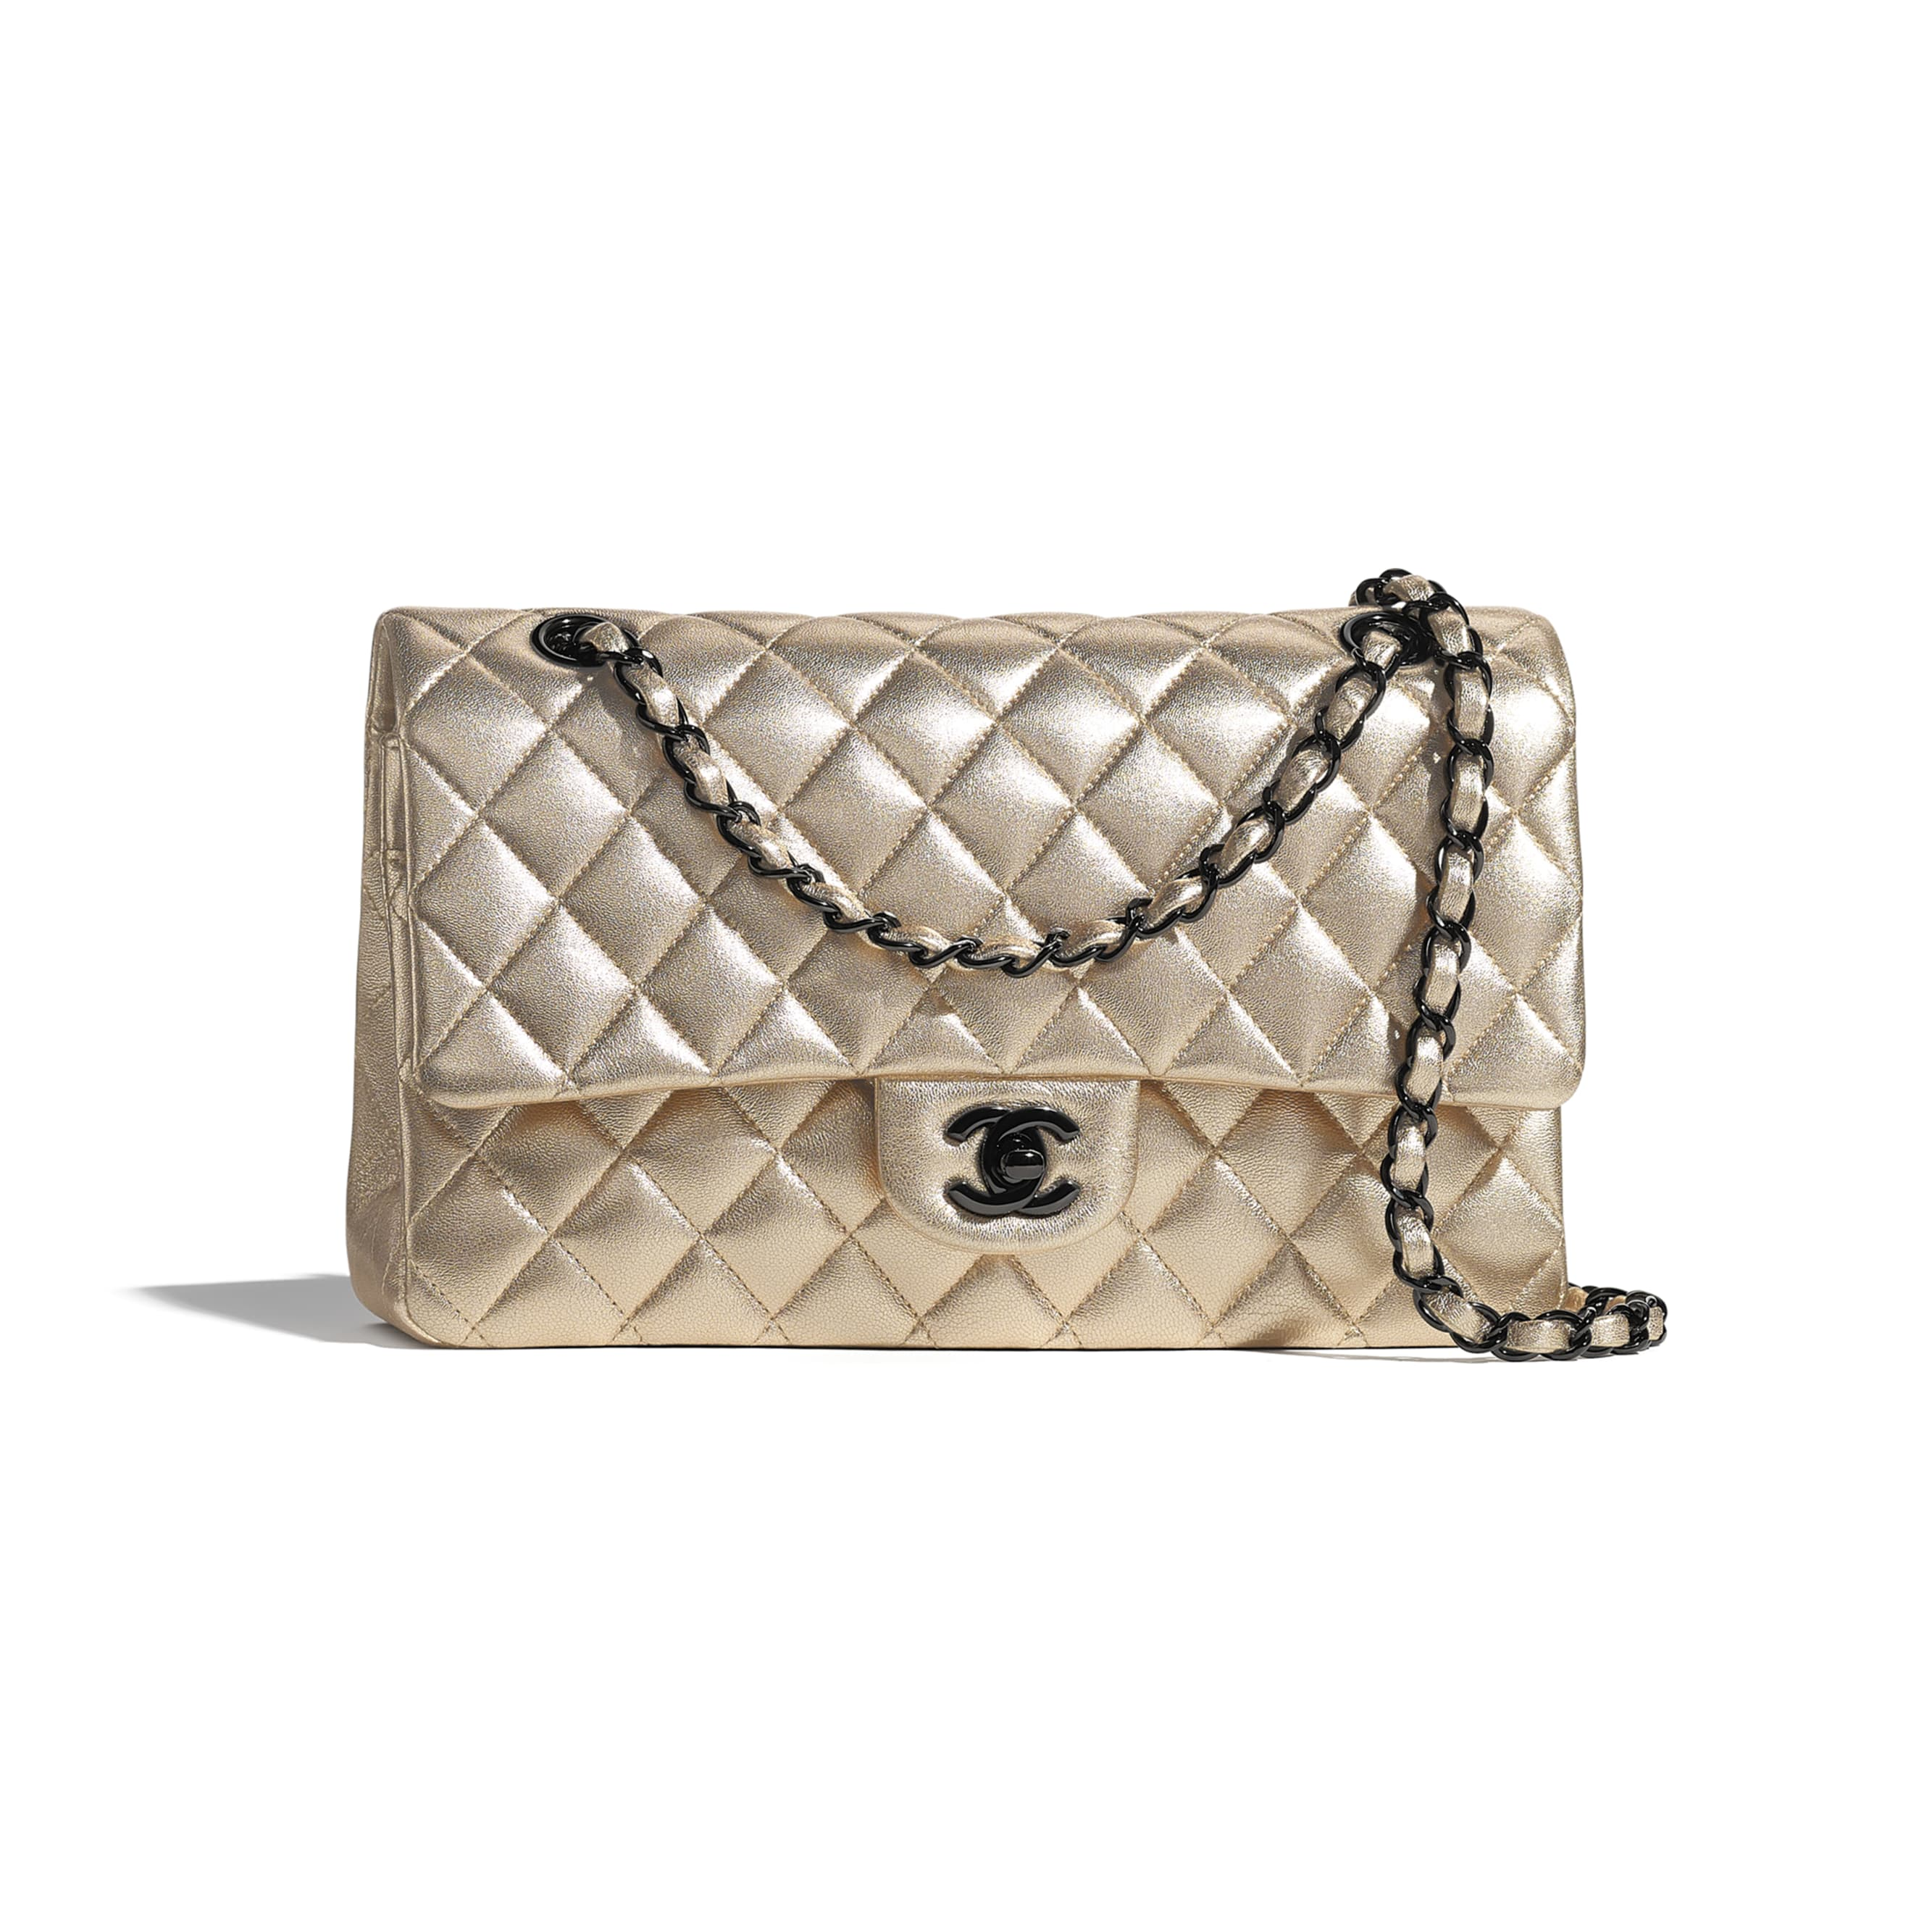 Classic Handbag - Gold - Metallic Lambskin & Black Metal - CHANEL - Default view - see standard sized version